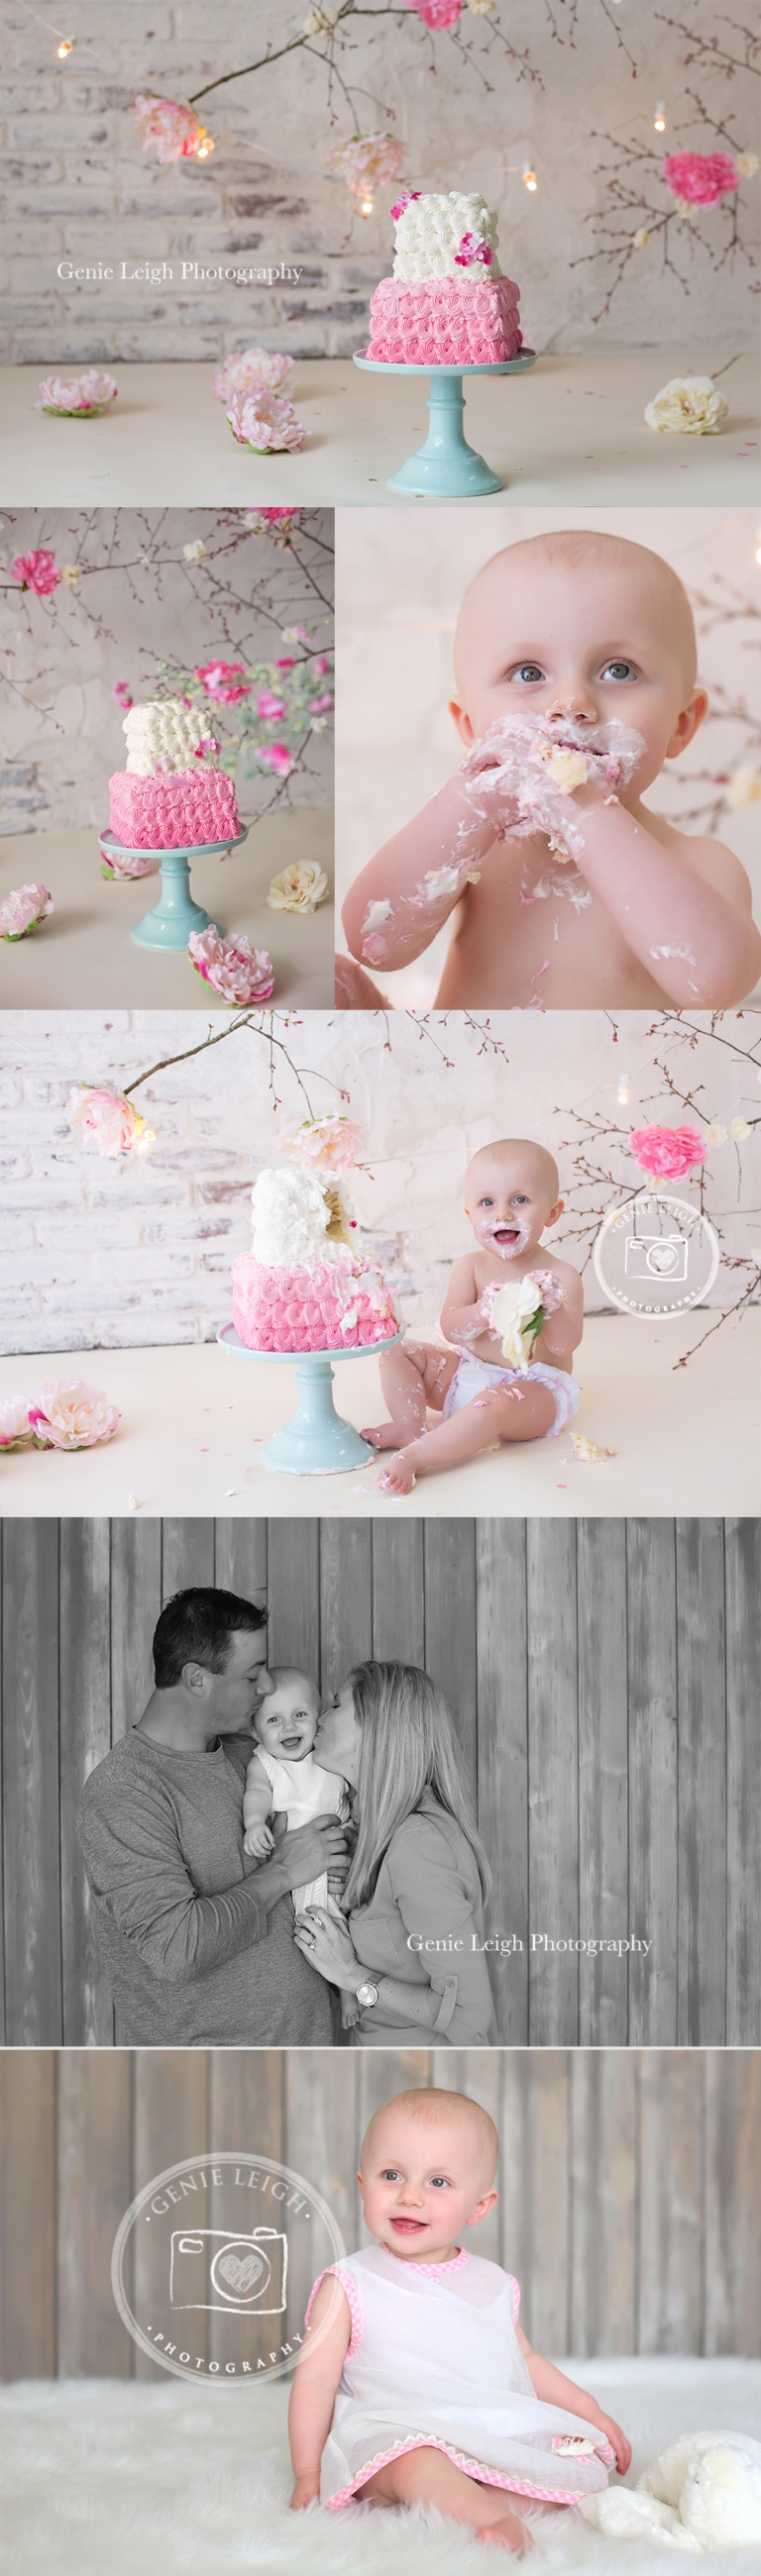 Spring time cake smash session, Genie Leigh Photography, Shallot, NC Studio, Wilmington NC, Baby Birthday, Studio Session, Cherry Blossom Cake